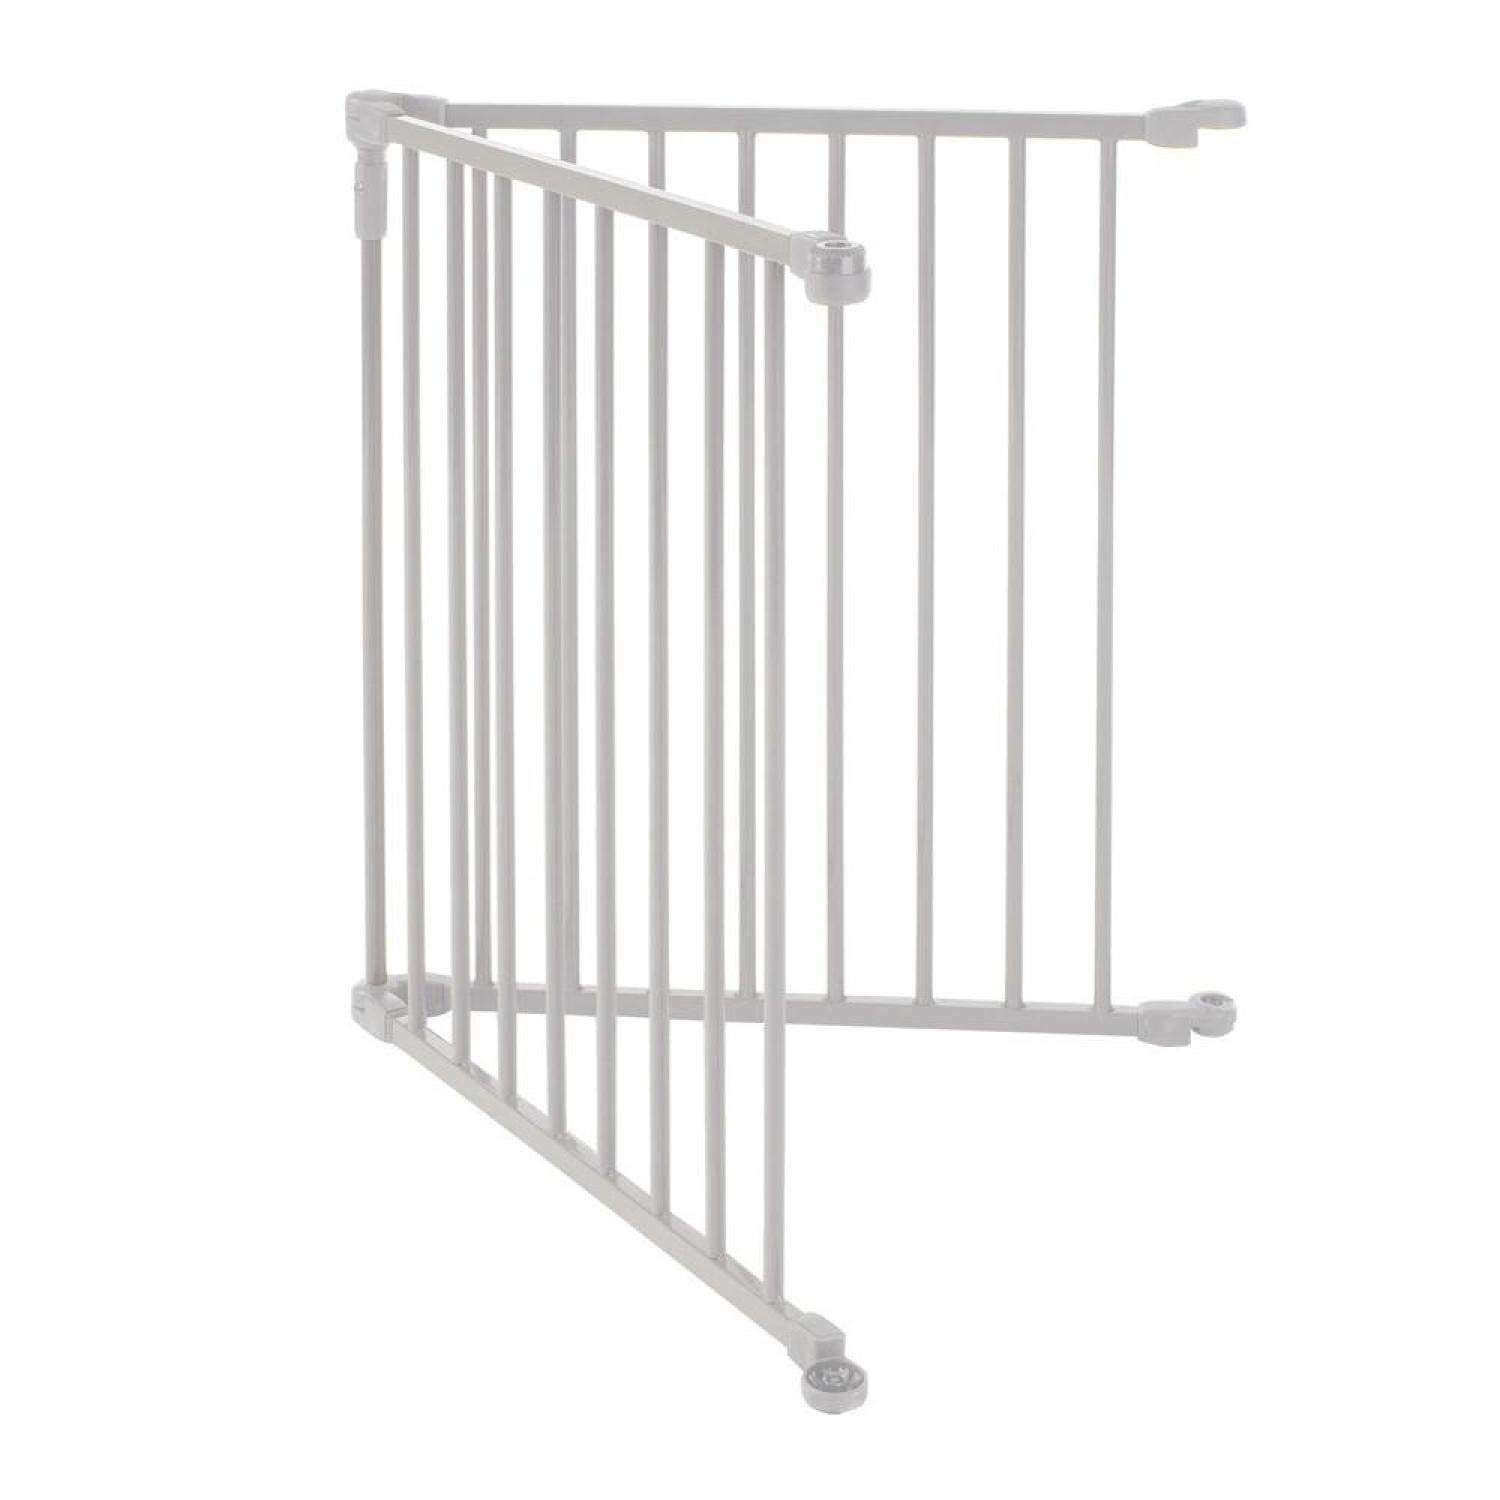 North States 3-in-1 Metal Superyard Create An Gate 144 Inches Long Play Yard